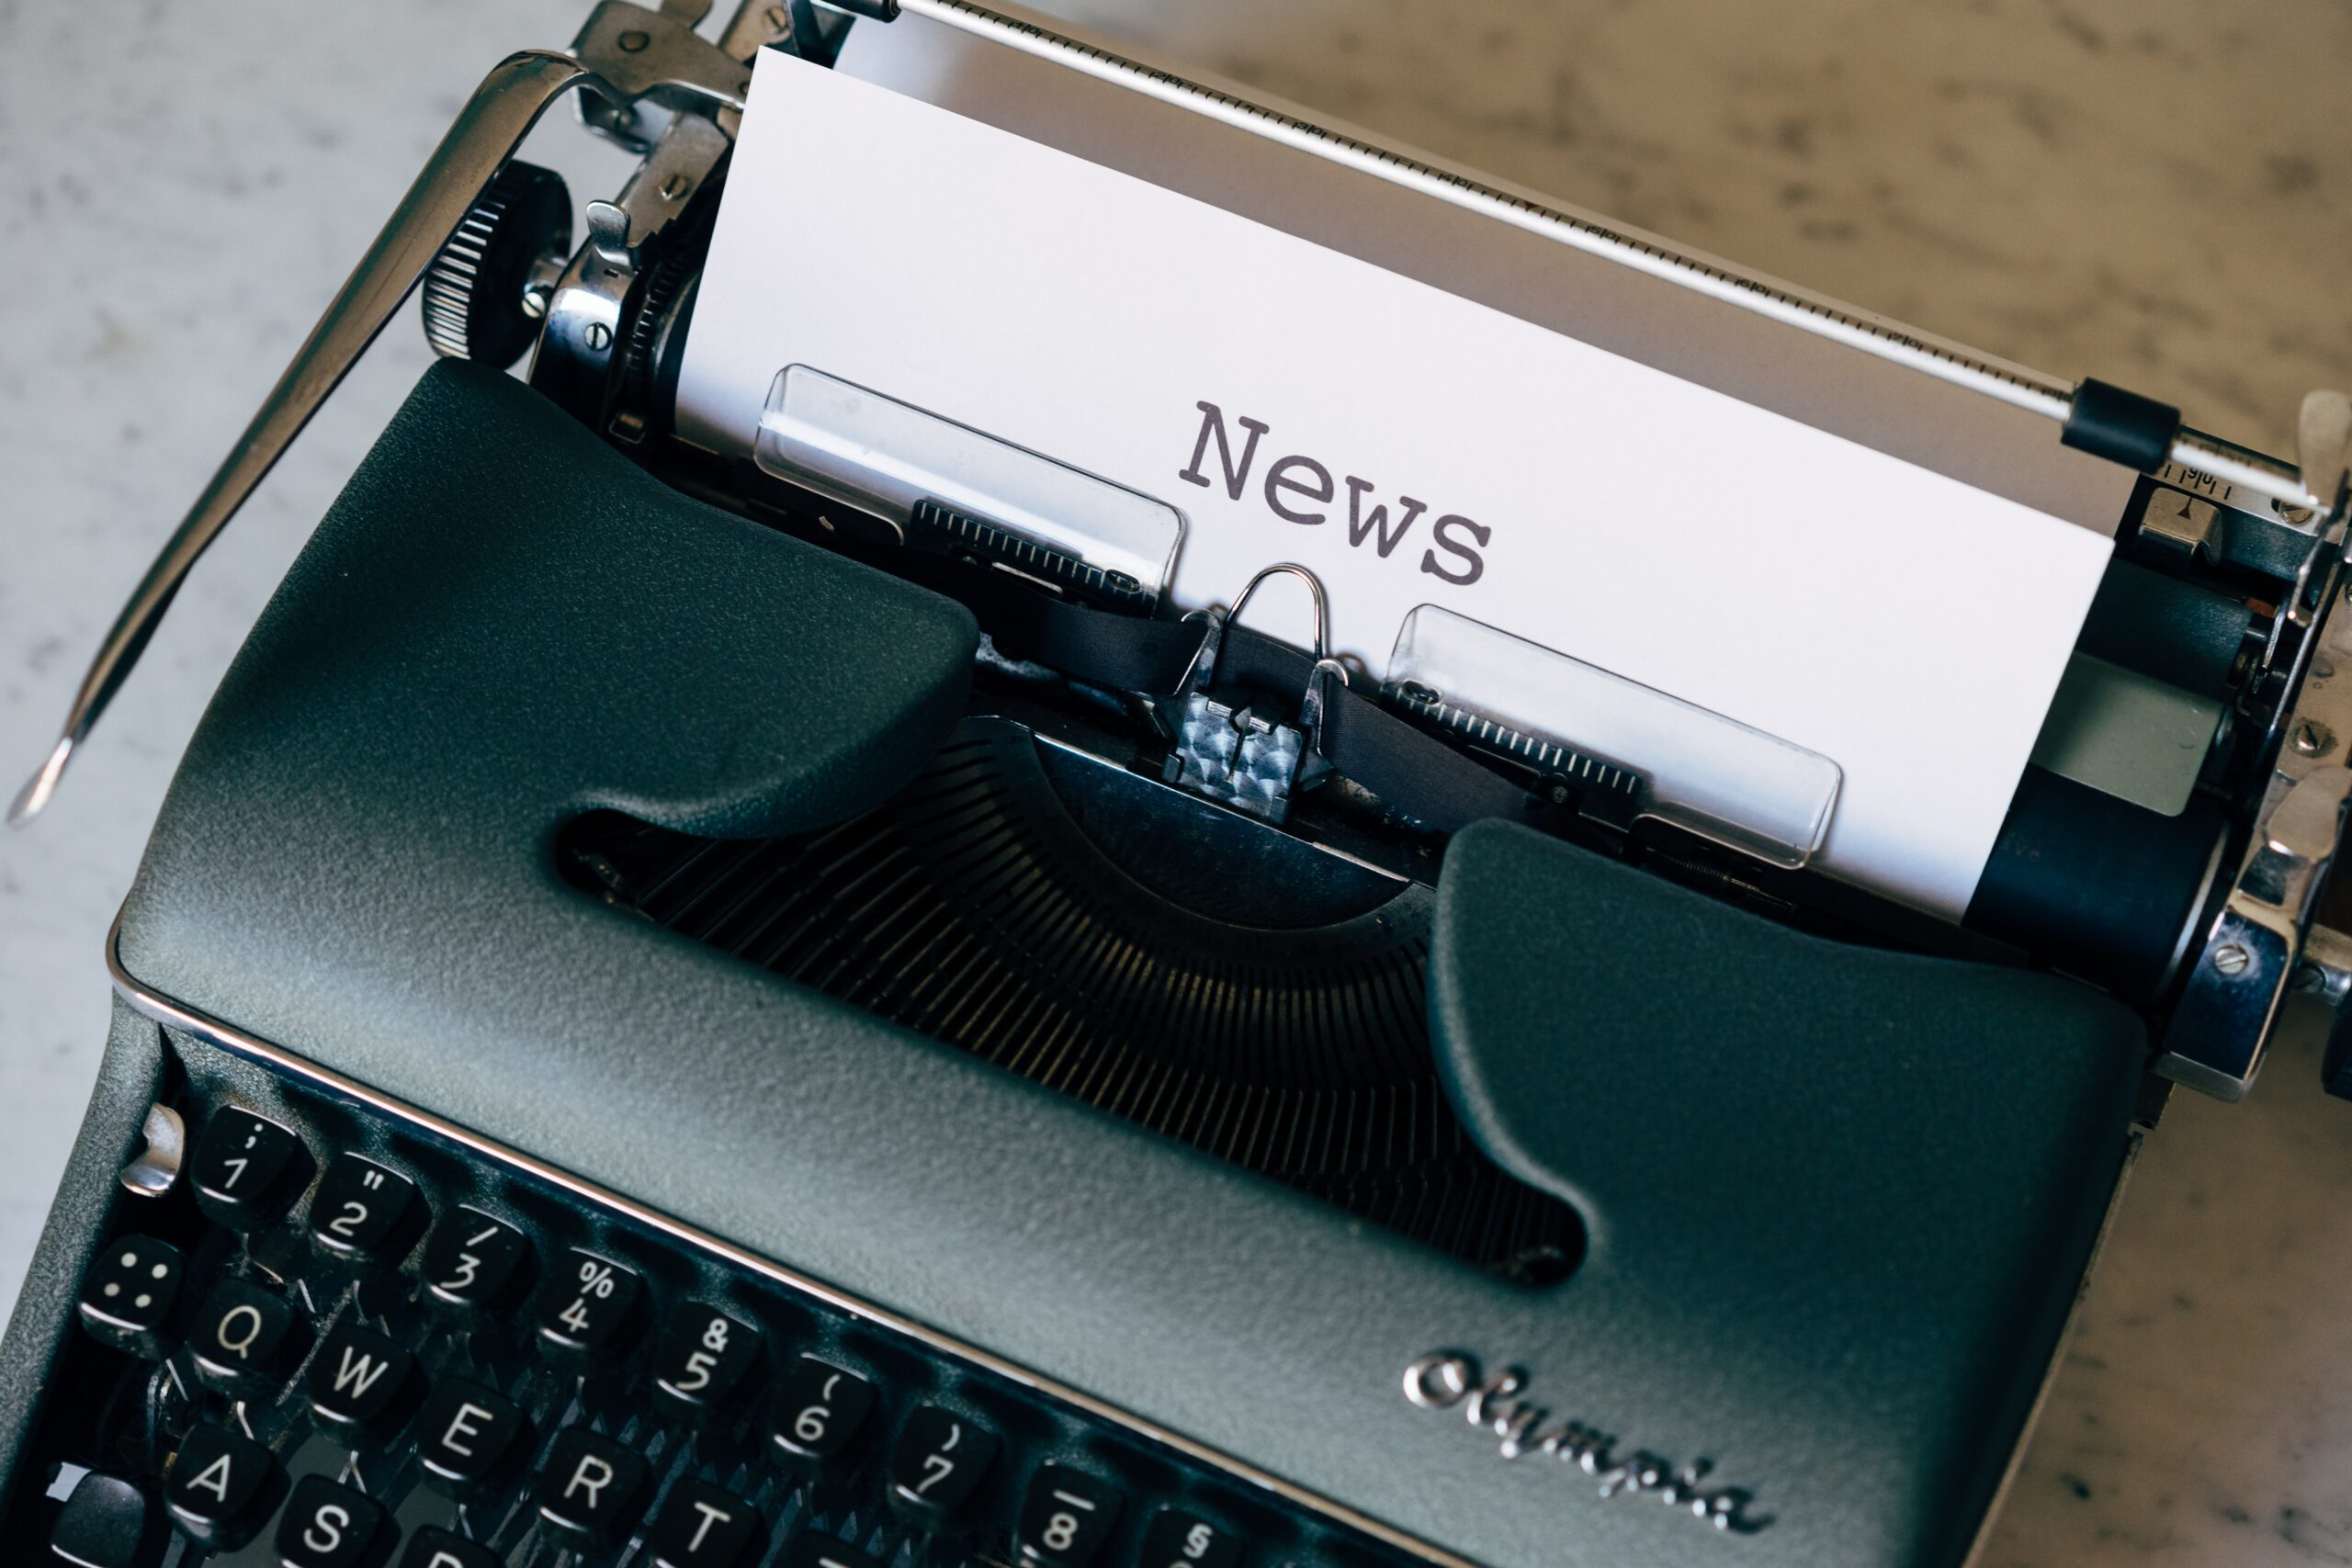 Bizzjournals as a Potential News Source In 2021